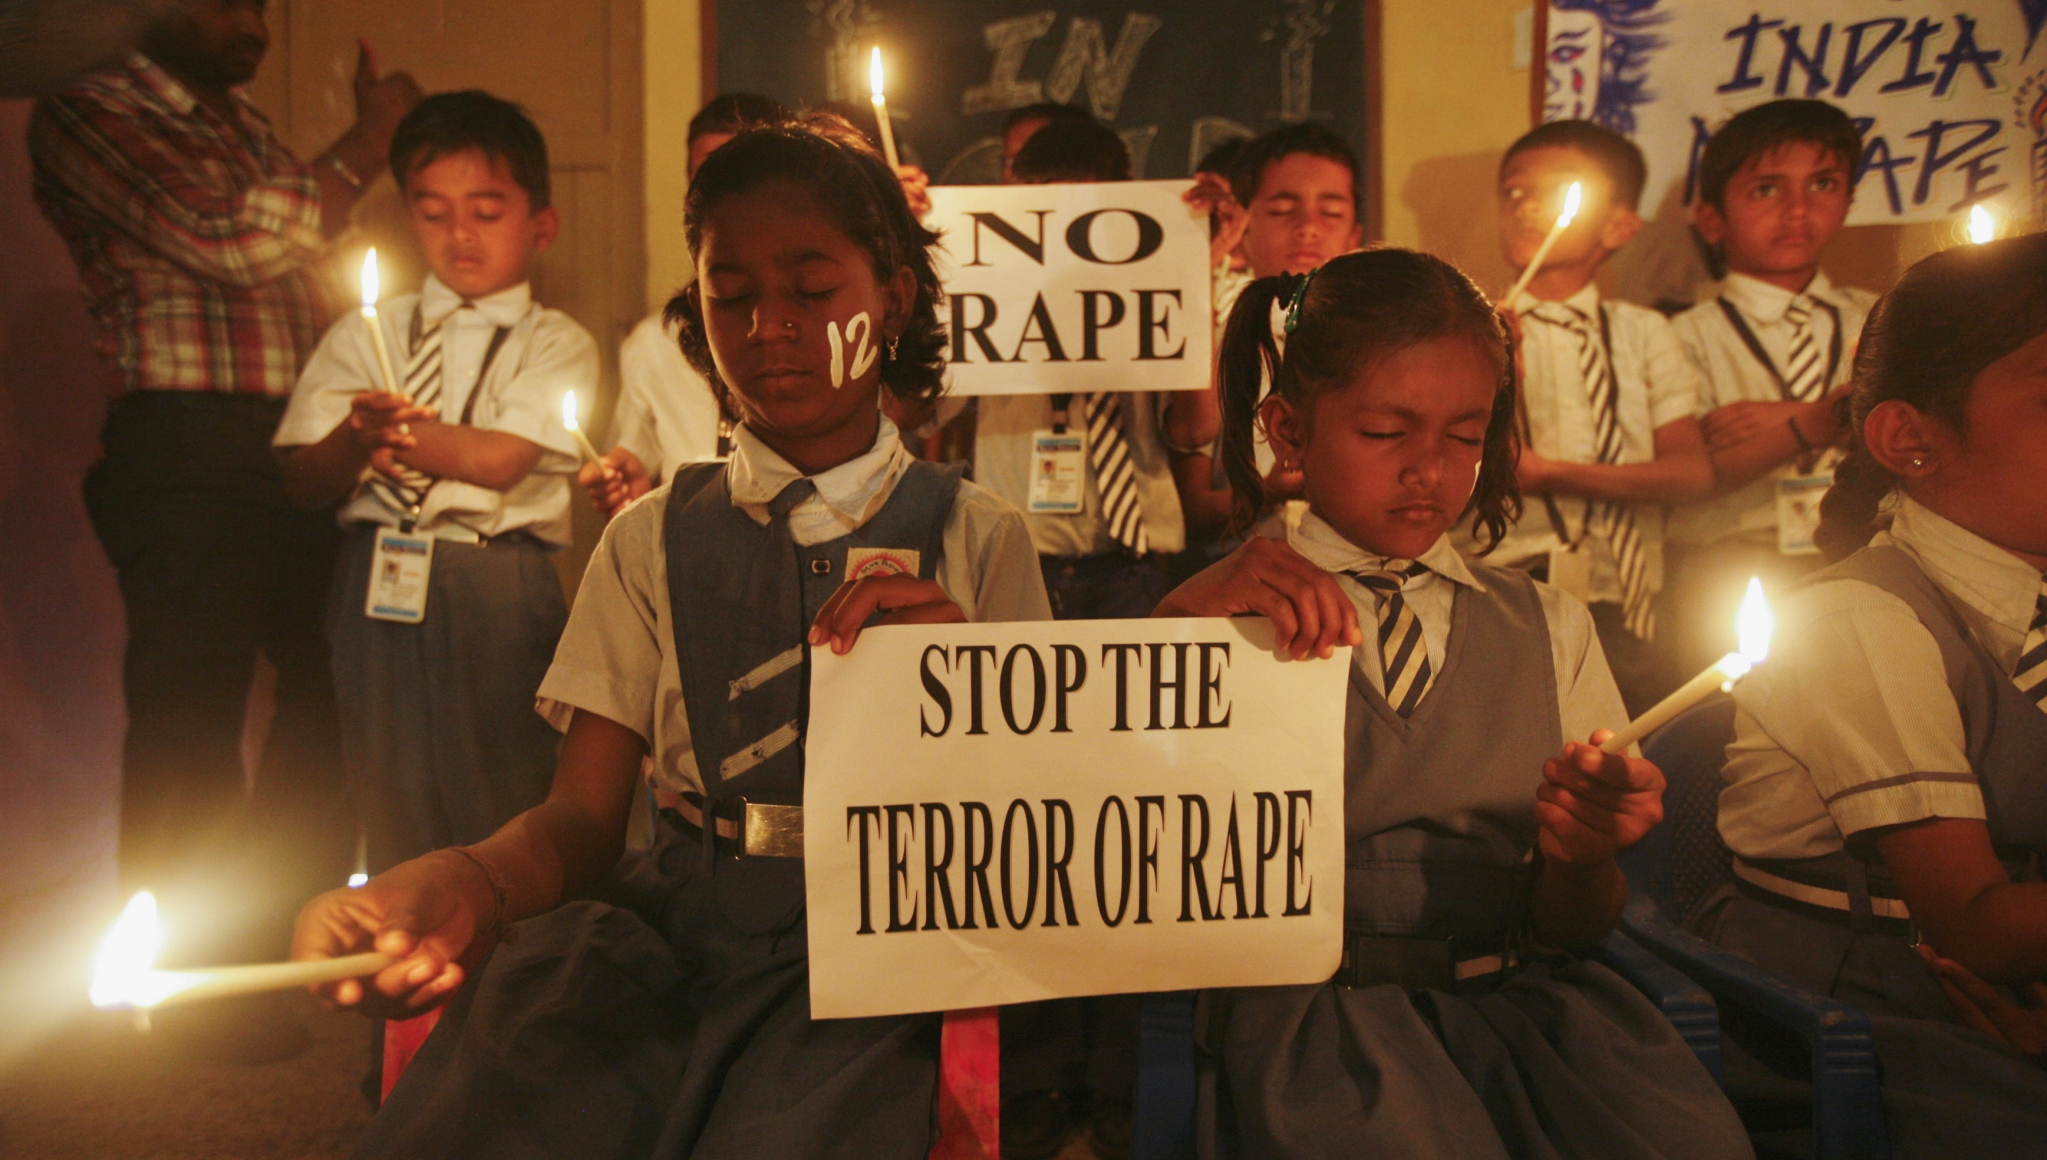 16-Yr-Old Dalit Girl Gang-Raped by 10 in Maharashtra, Five Held